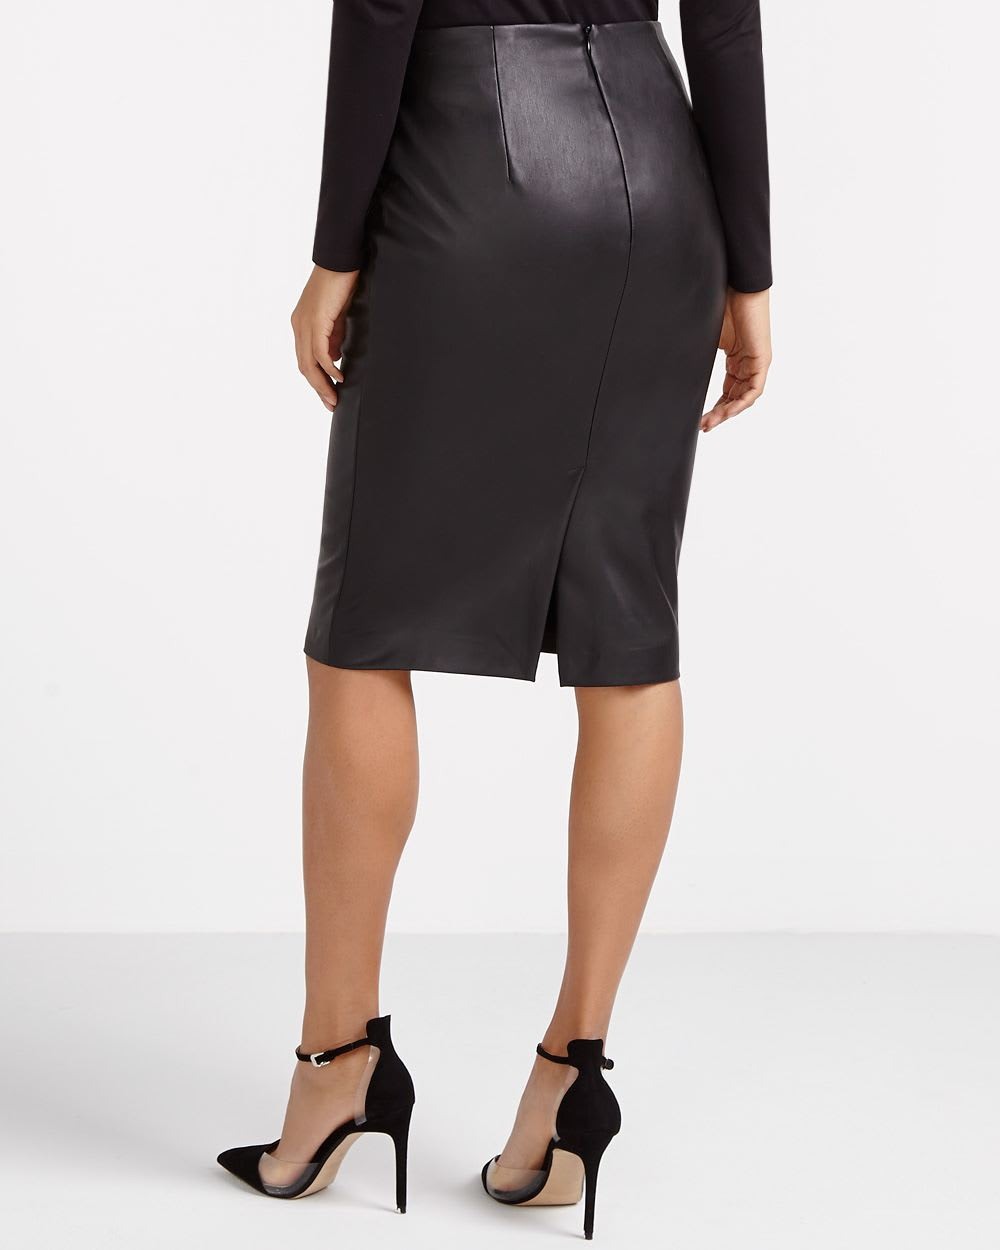 We've got leather skirts in mini, midi, wrap and skater styles in classic black as well as red, khaki and white. If it's a new out-out outfit you need, pick up a leather look mini in black and style it out with a lace bodysuit, and for a office look you won't ever wanna take off, our PU and faux leather midi skirts are perfect for tucking.